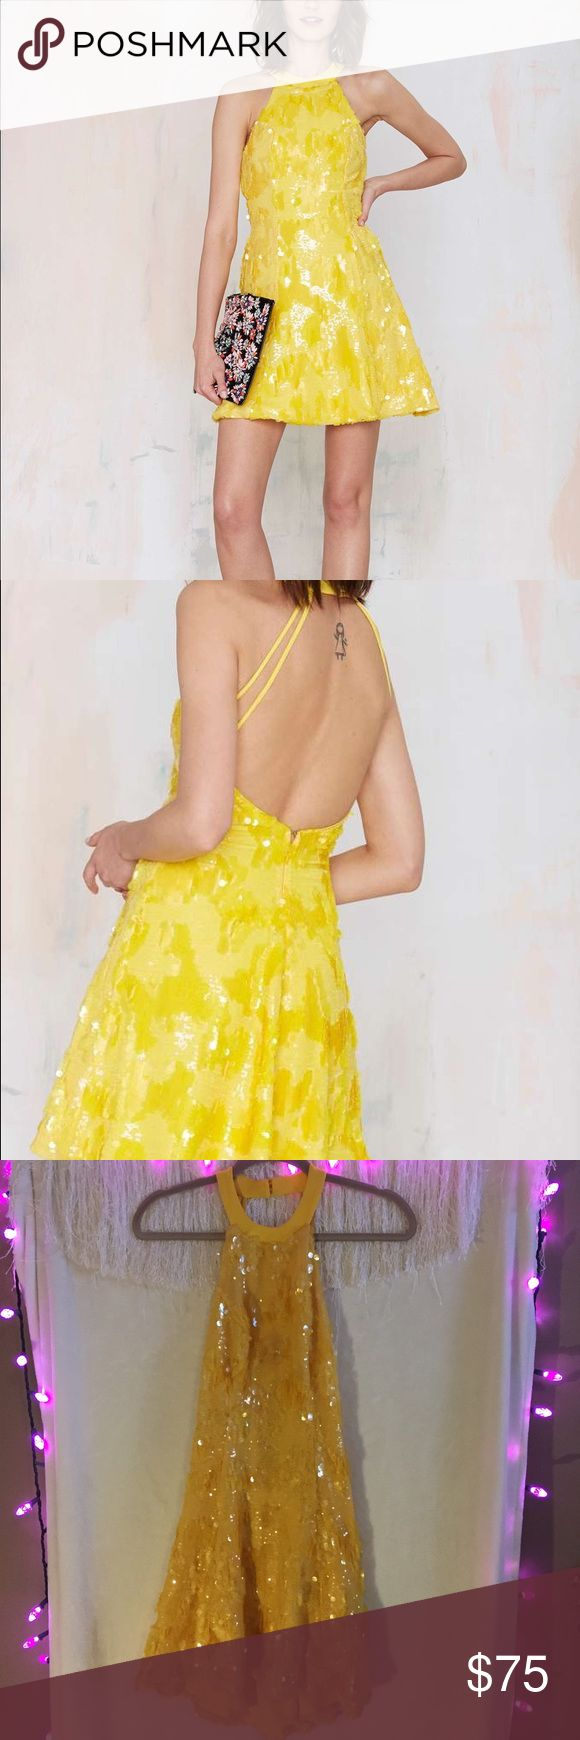 NWT Dress the Population Anni Yellow Sequin Dress Very fun and beautiful dress! Has unique sequin details. Brand new, never worn. Would make a great outfit for a New Years Eve party! Sold out online Nasty Gal Dresses Mini